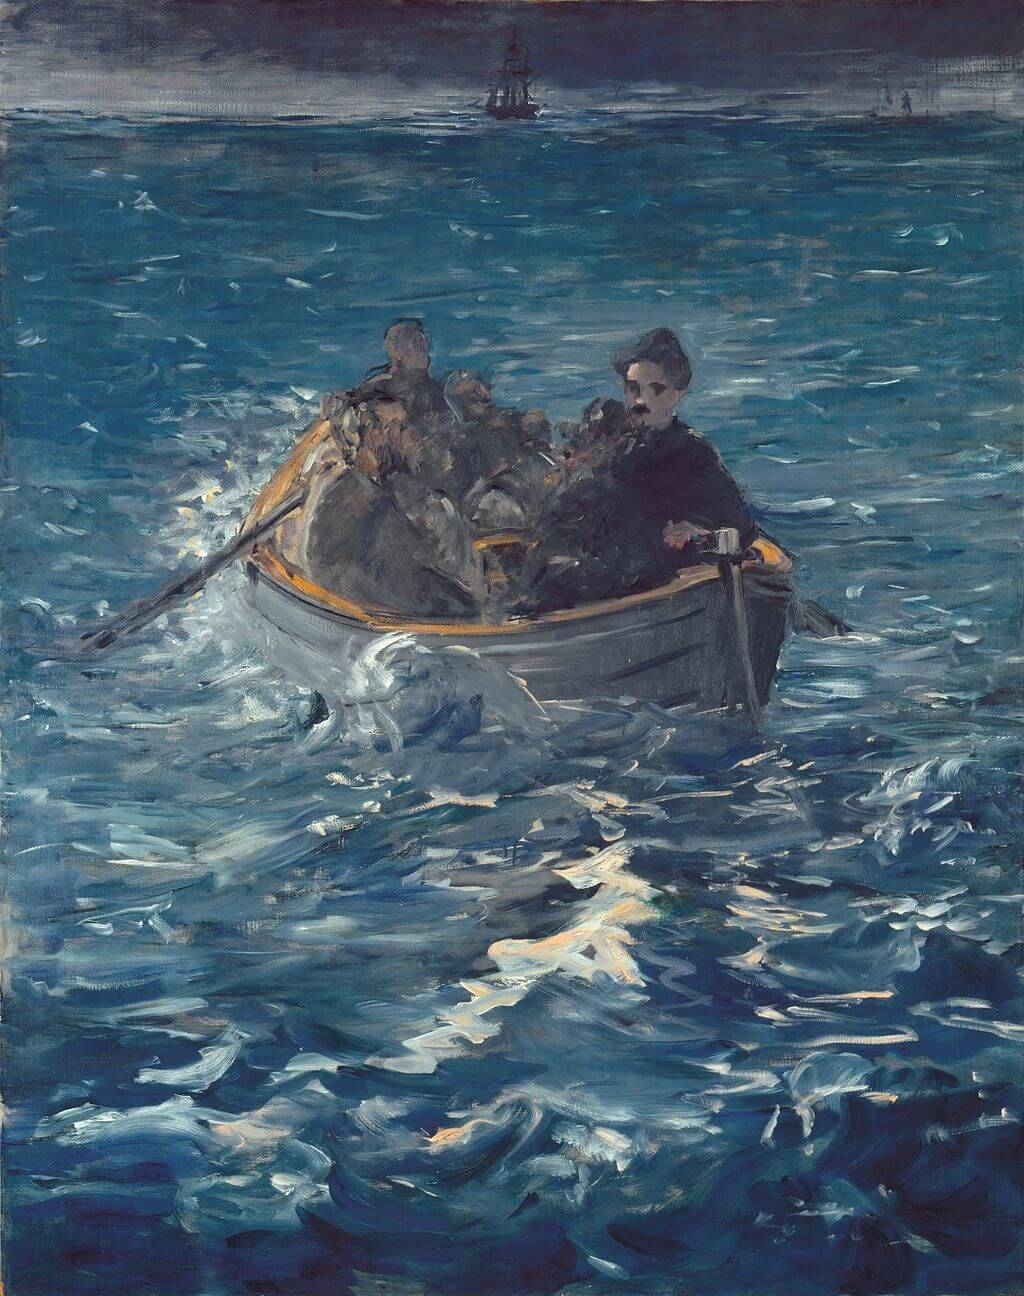 Rochefort's Escape by Edouard Manet in the Kunsthaus Zurich